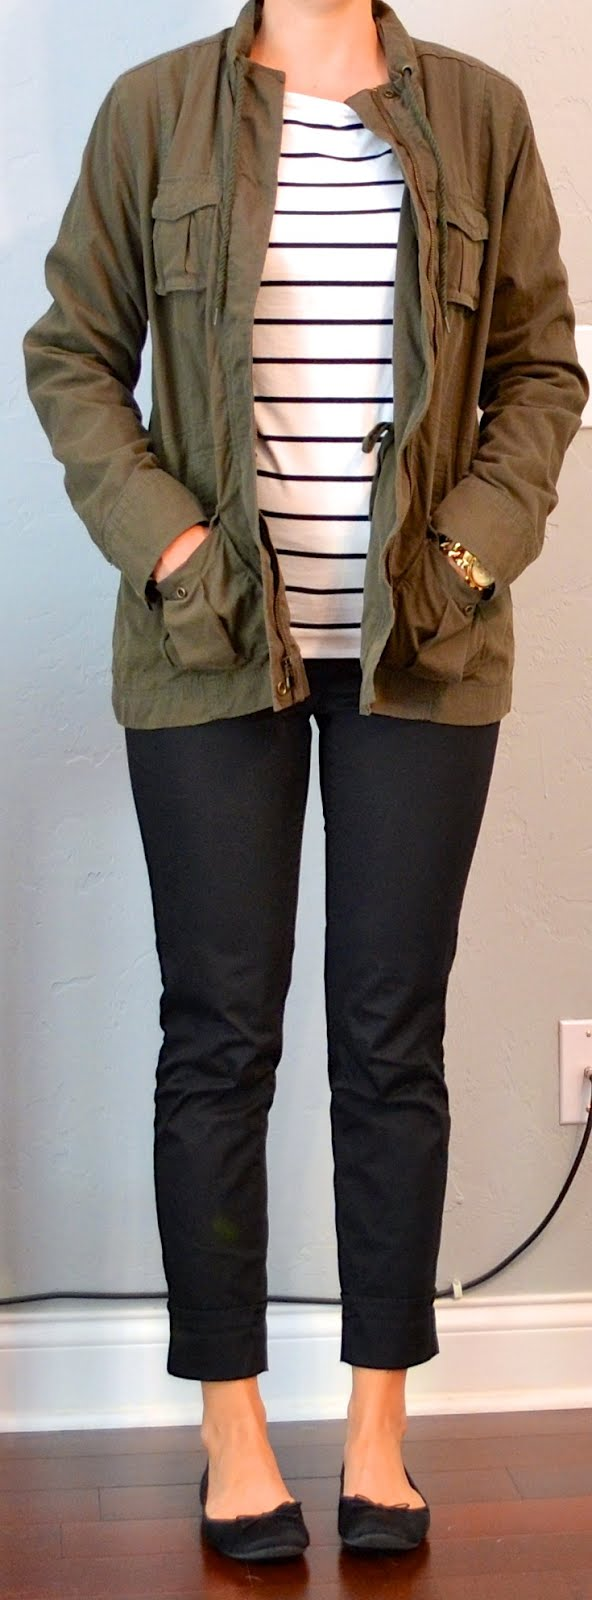 Outfit Post Striped Shirt Military Jacket Black Cropped